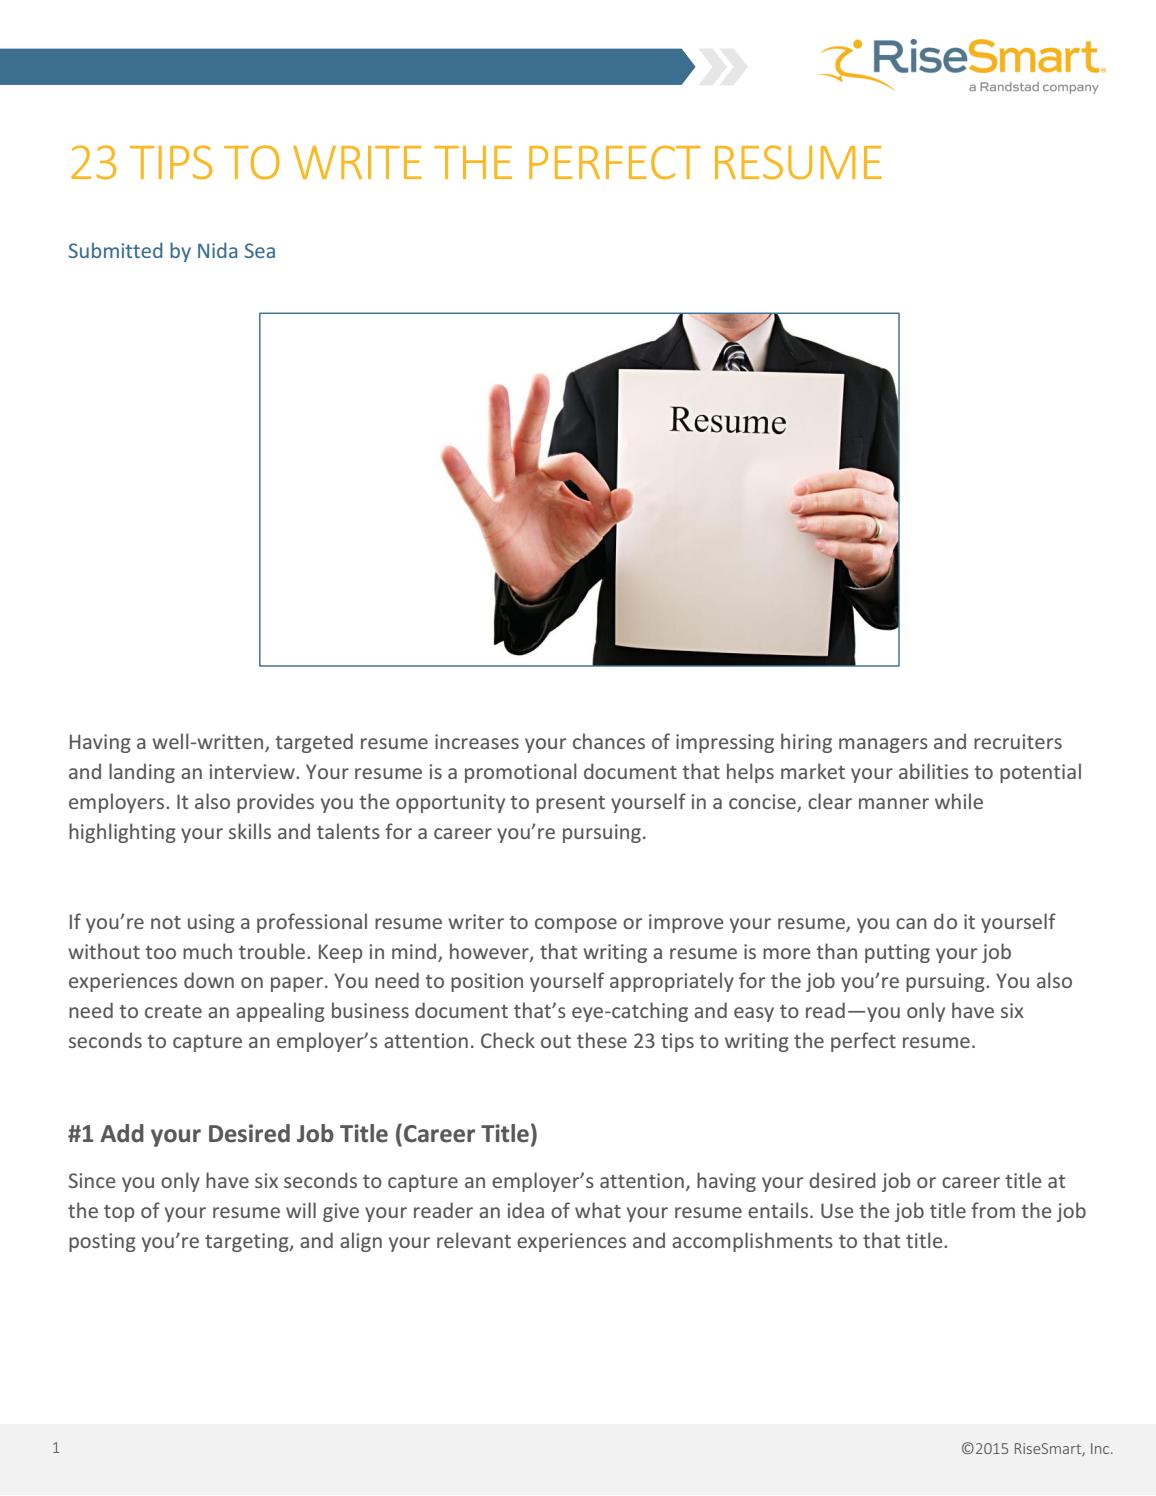 excellentresumewritingtips Free resume examples by industry a good teacher resume should also highlight qualifications such as lesson plan writing excellent business analyst resume.